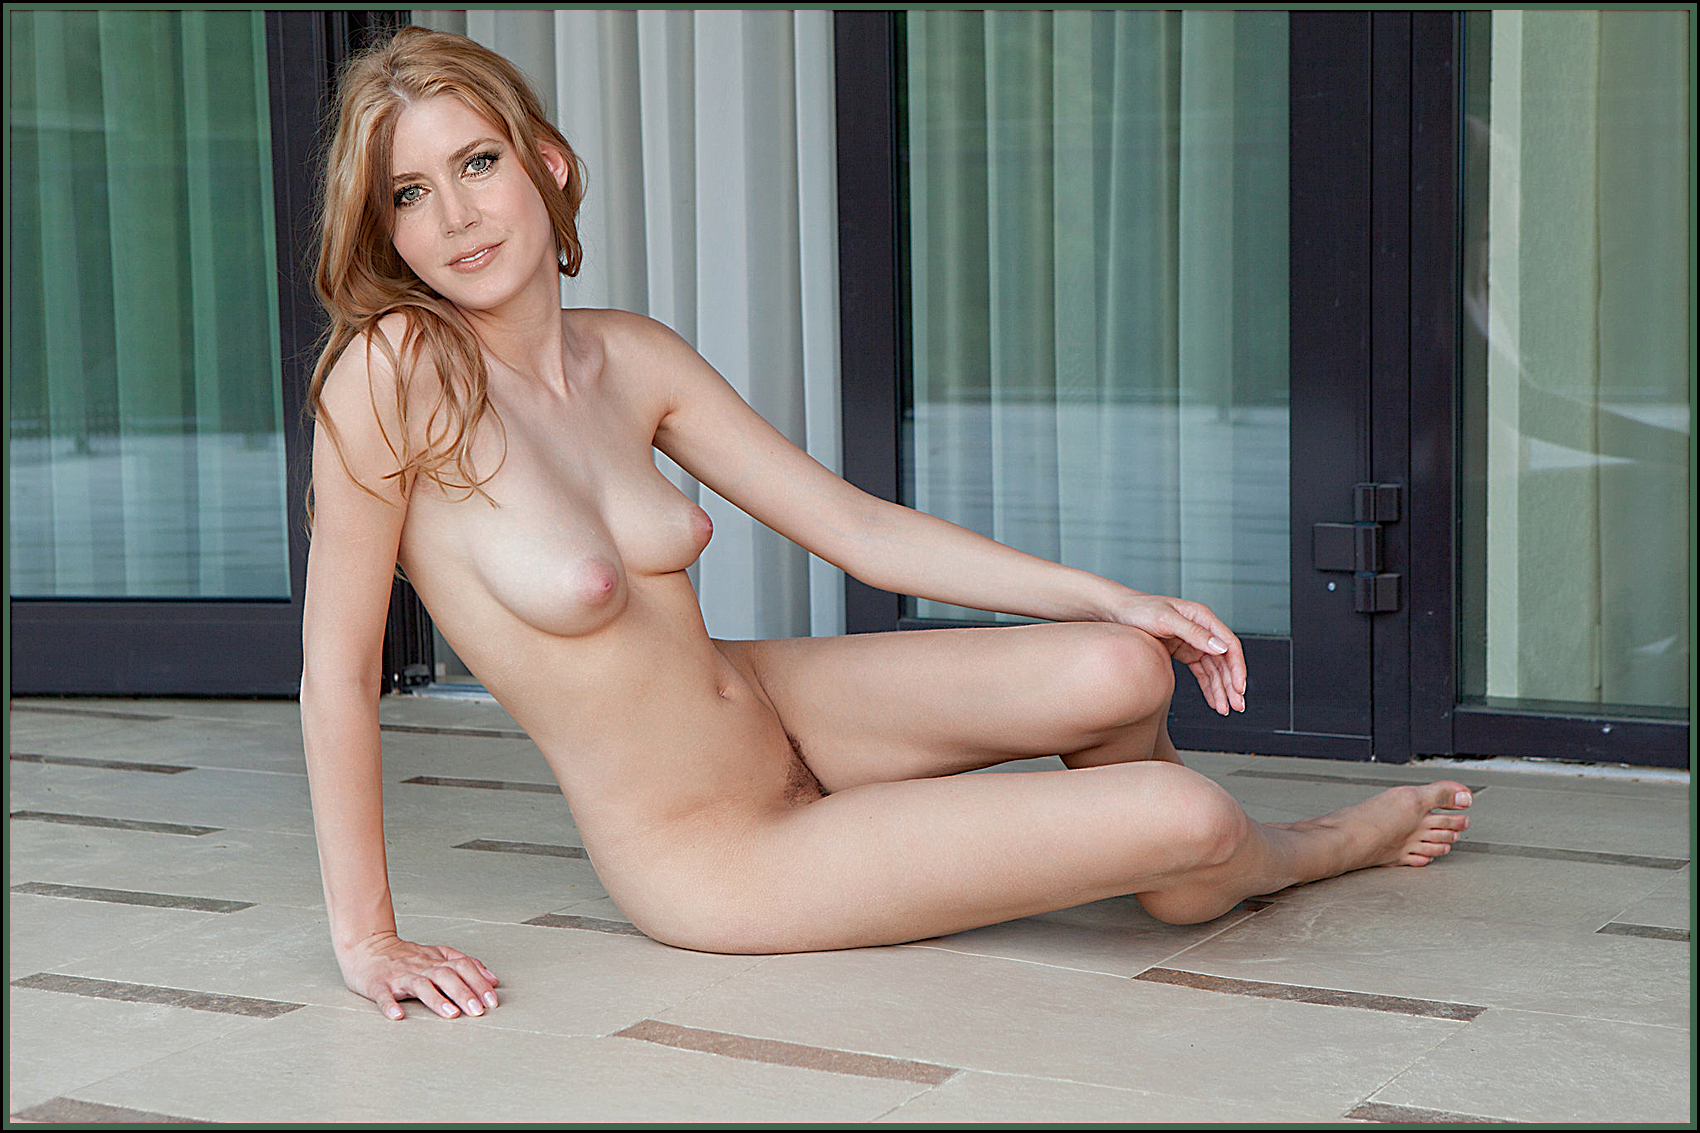 Amy shirley nude photo